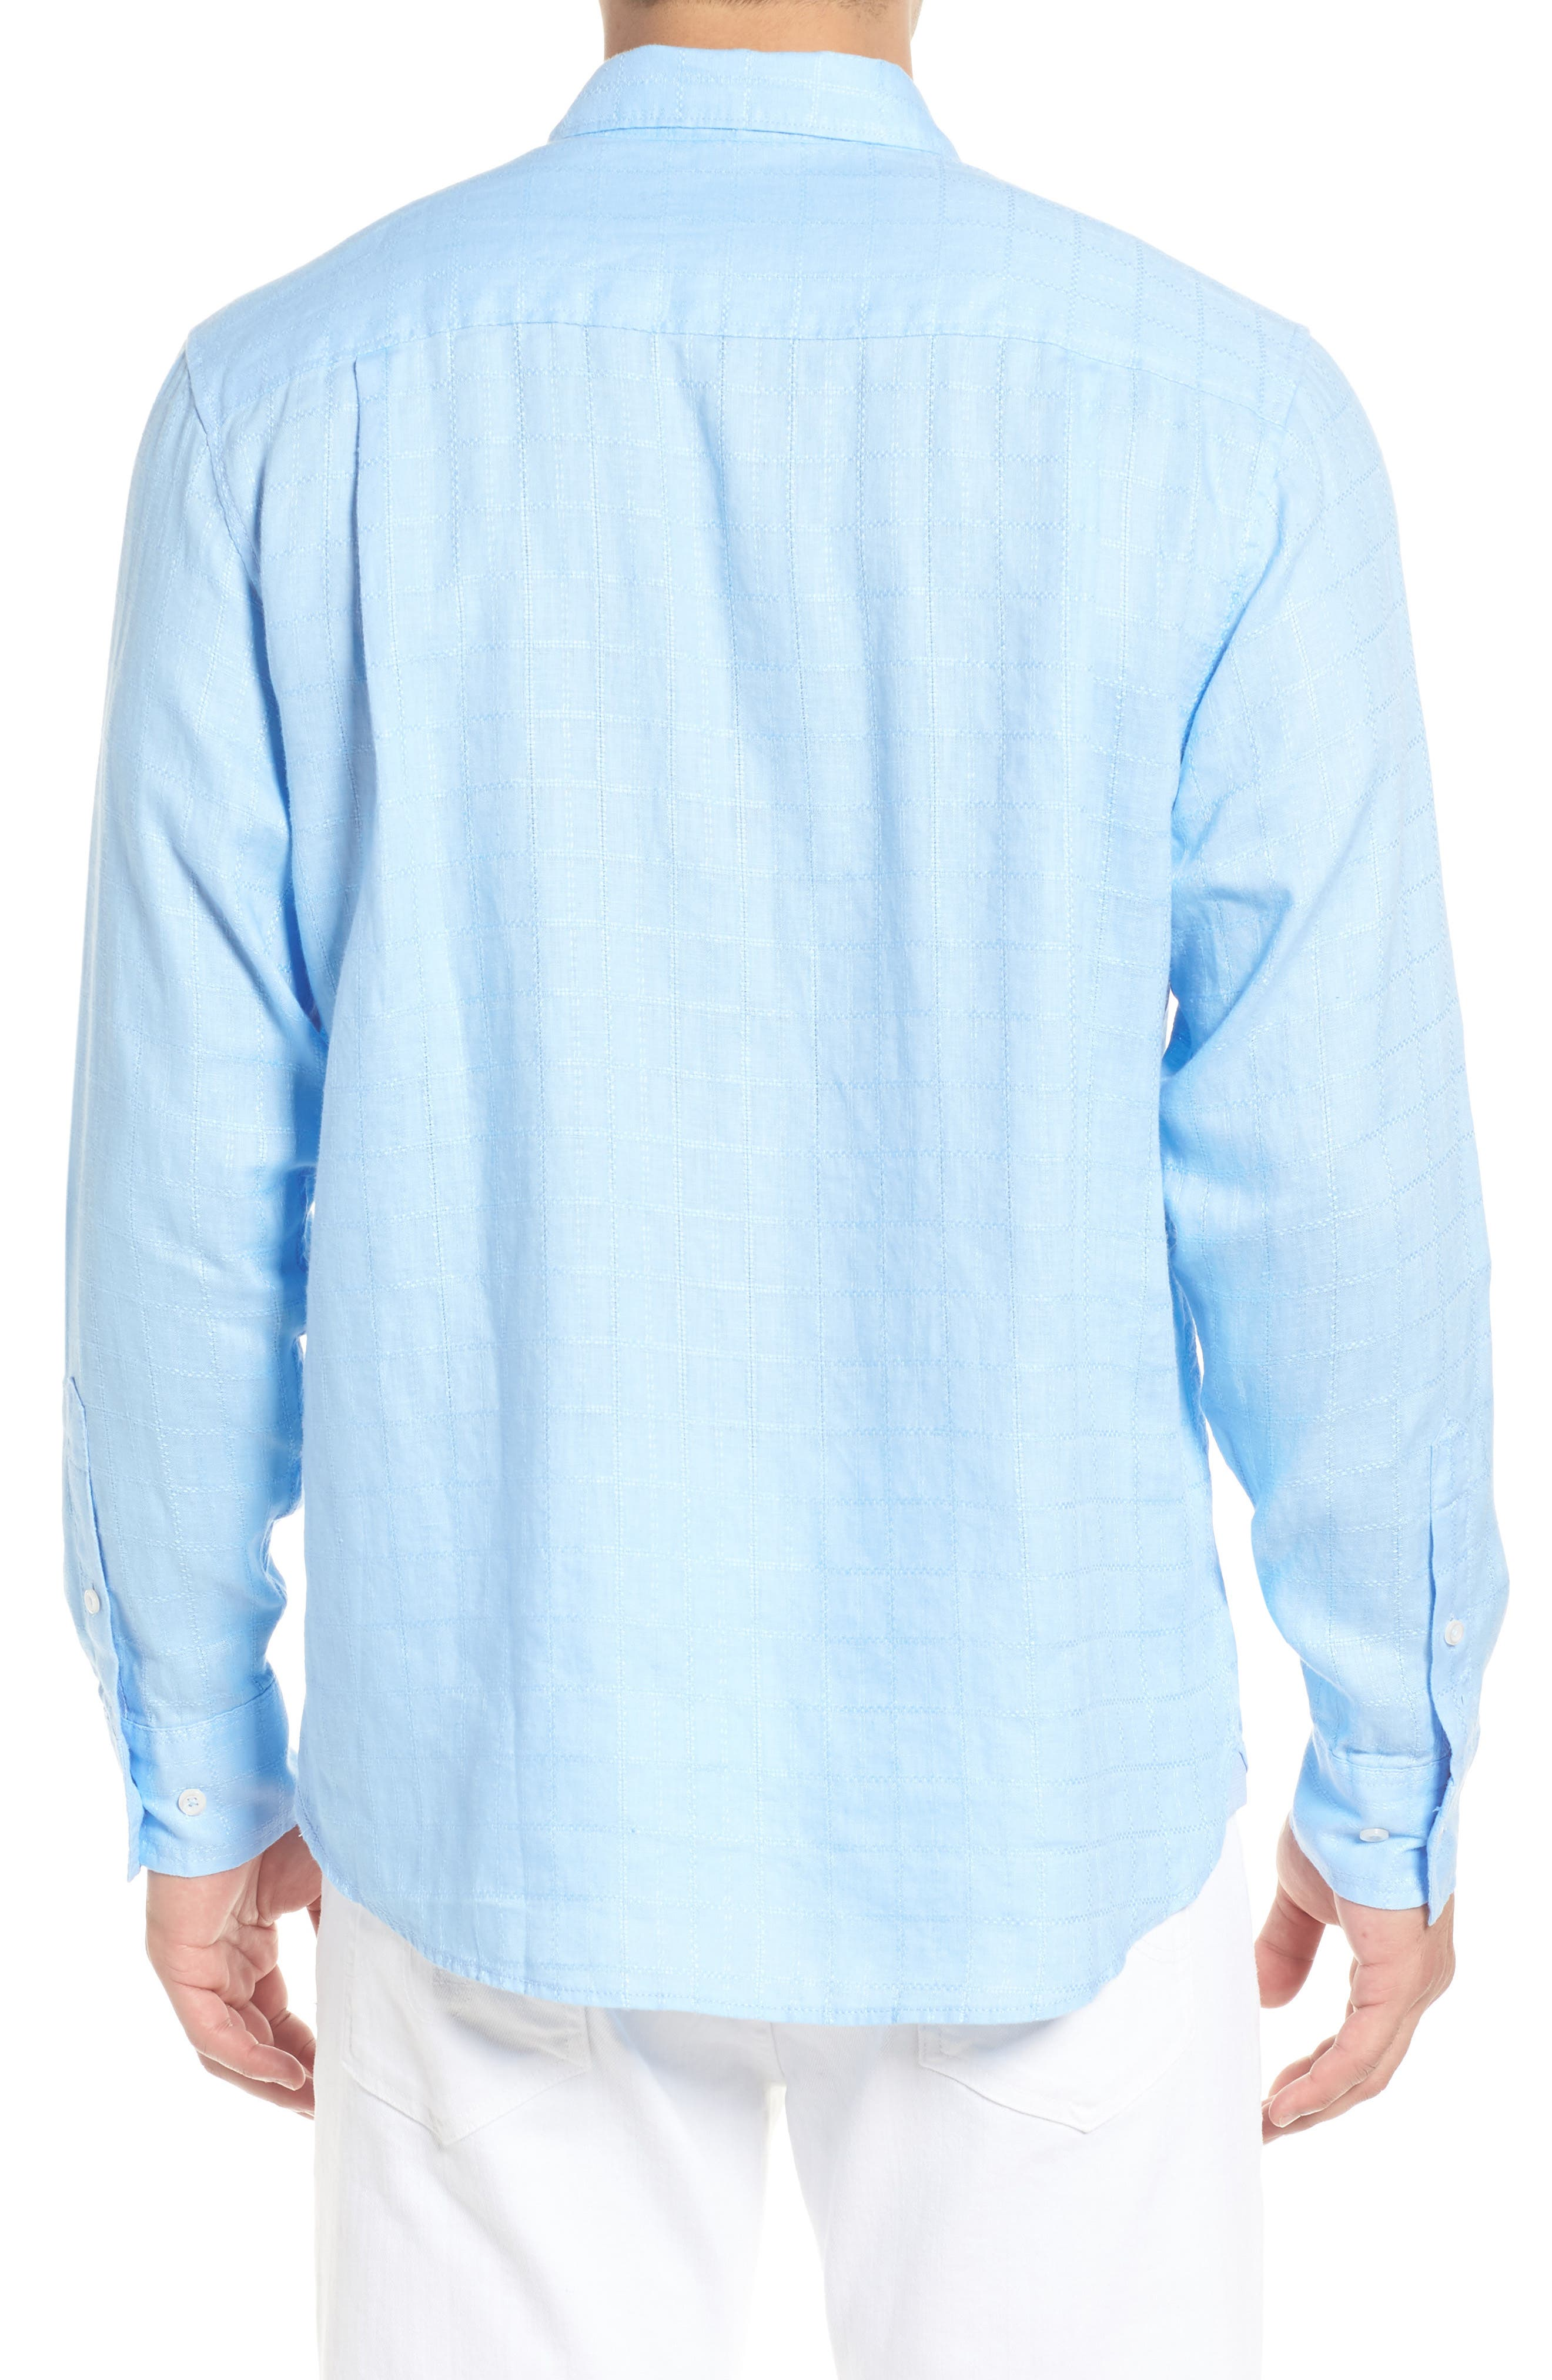 Costa Sera Linen Sport Shirt,                             Alternate thumbnail 3, color,                             Light Sky